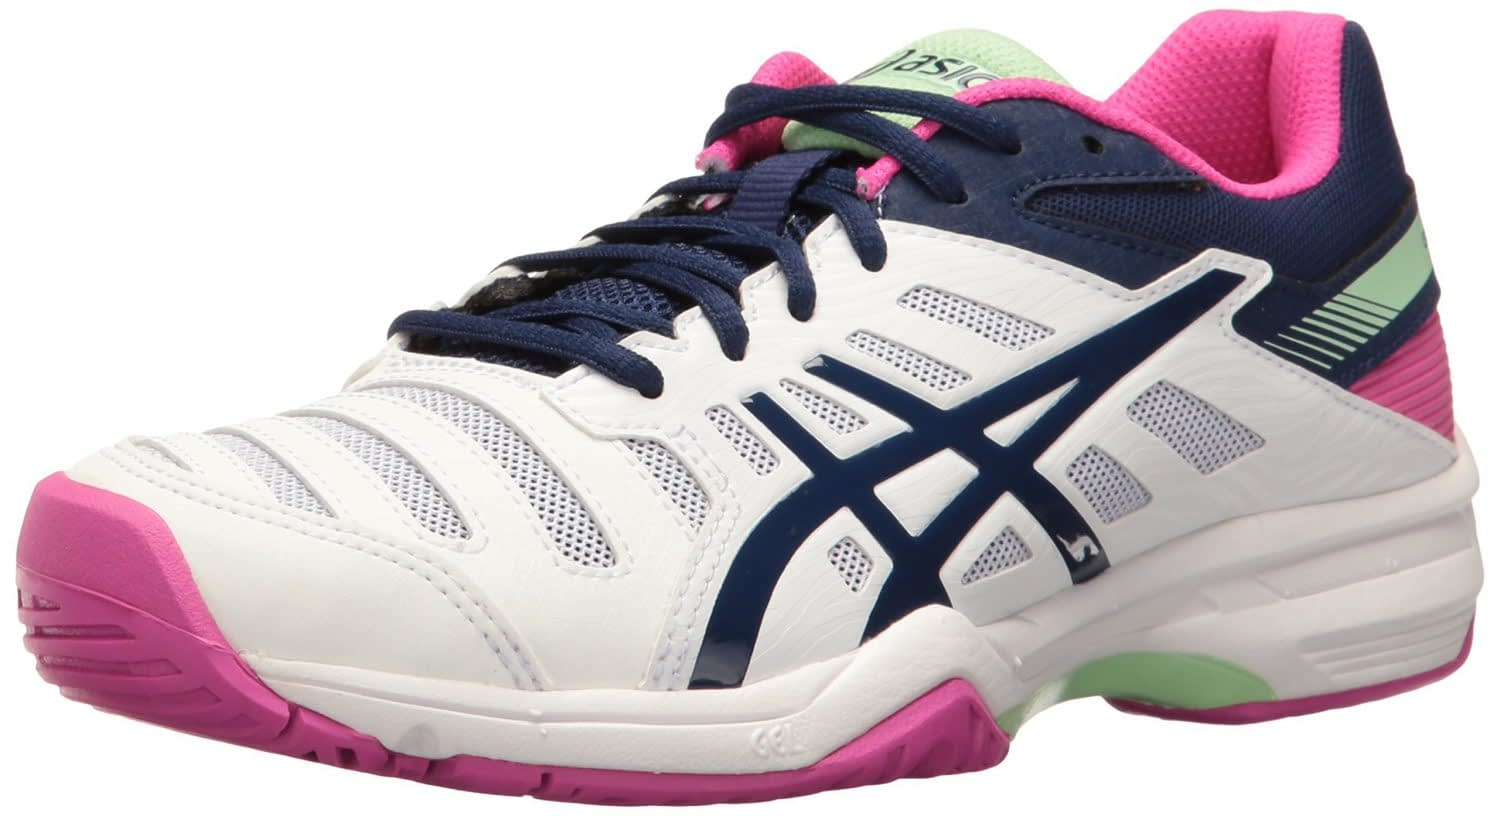 Best Hard Court Tennis Shoes for Women